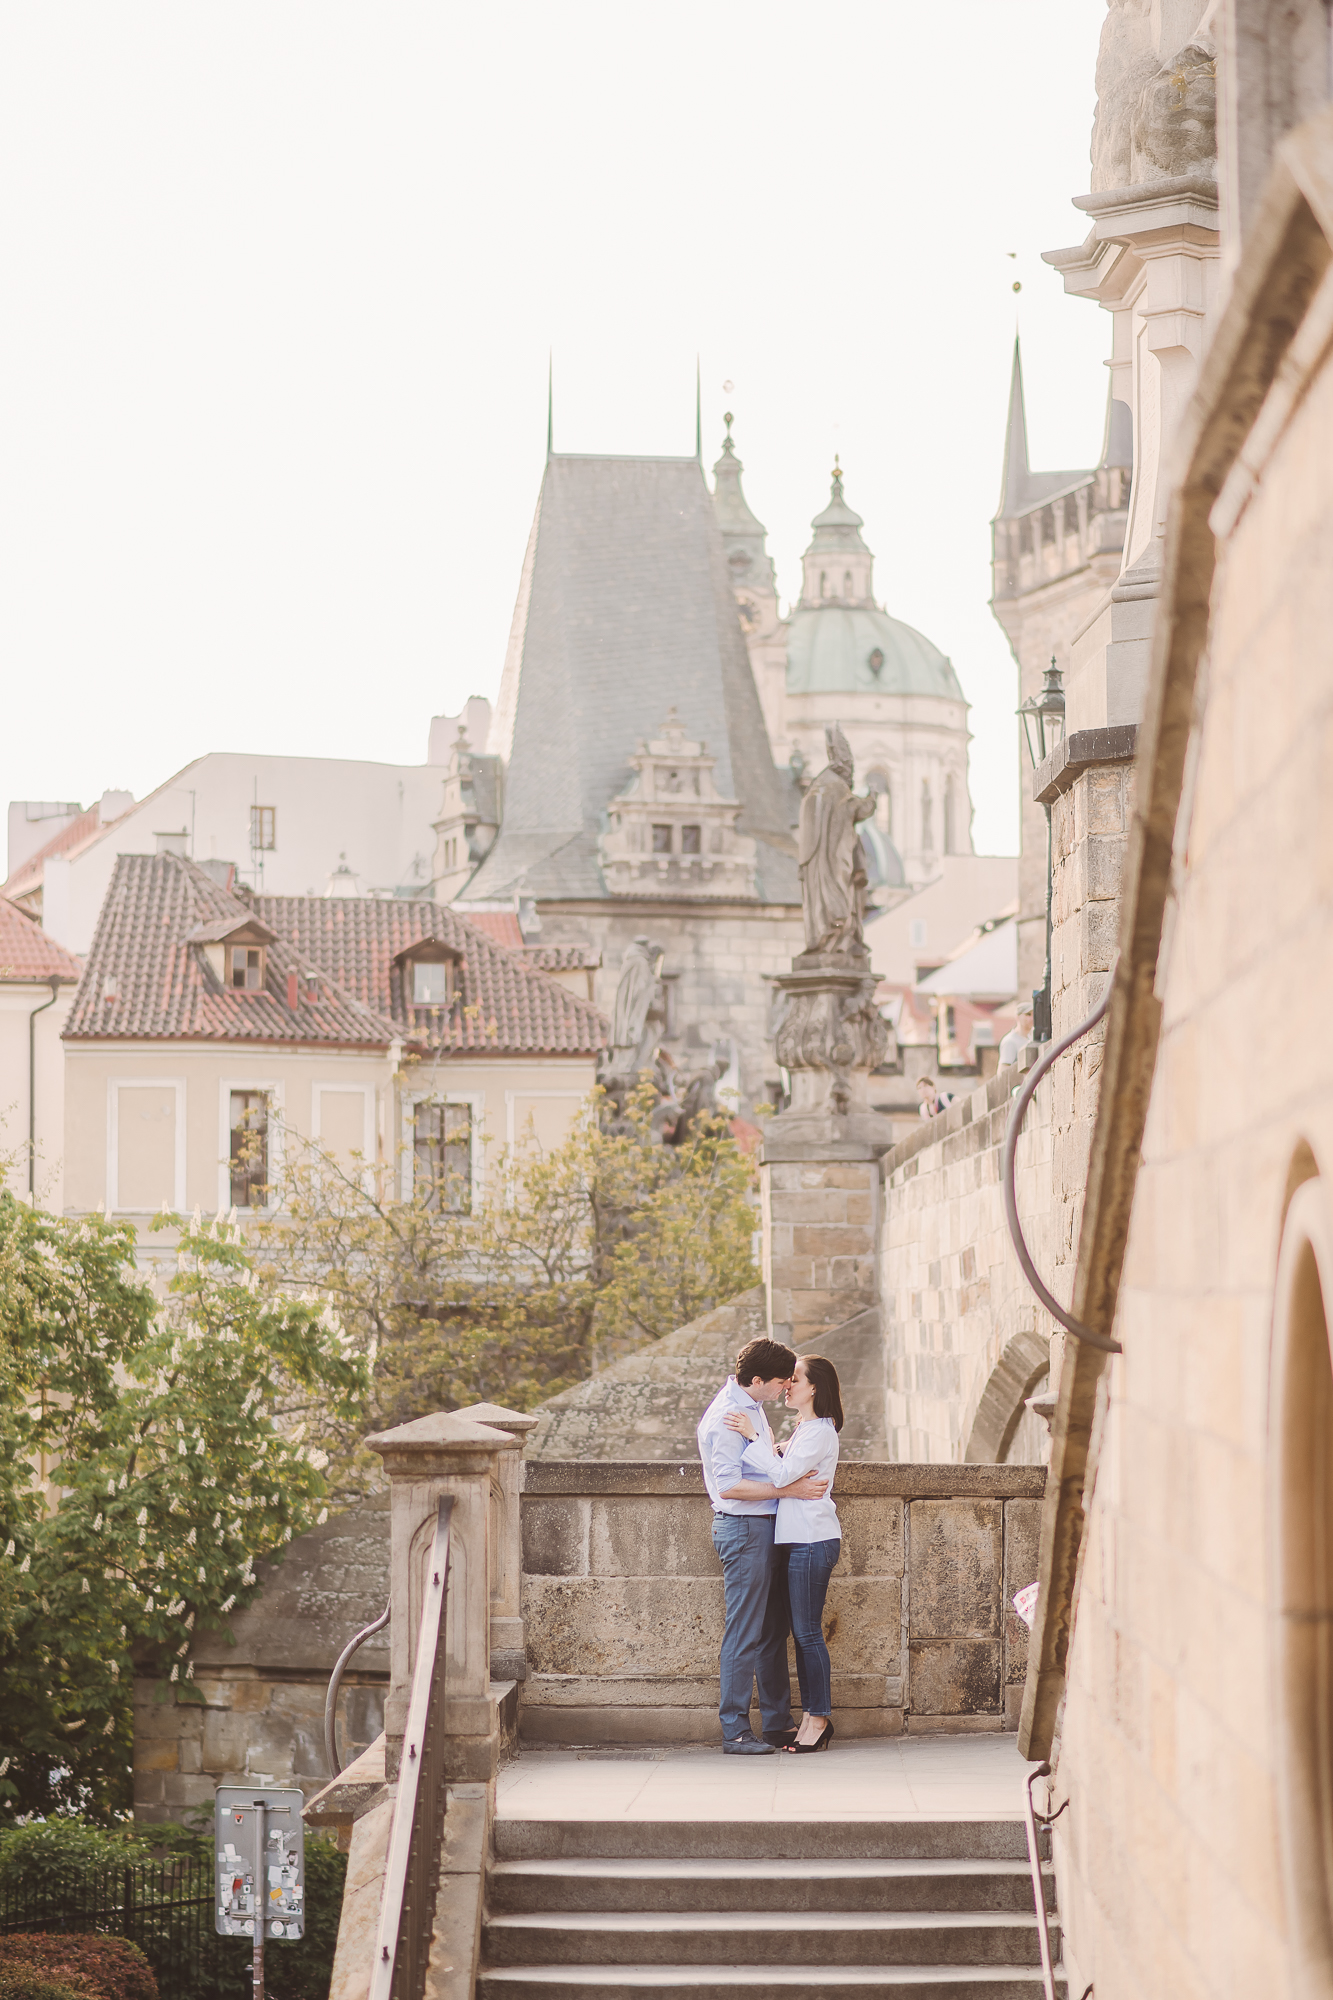 Prague-Wedding-Photography-Matej-Trasak-Engagement-SD-8.jpg